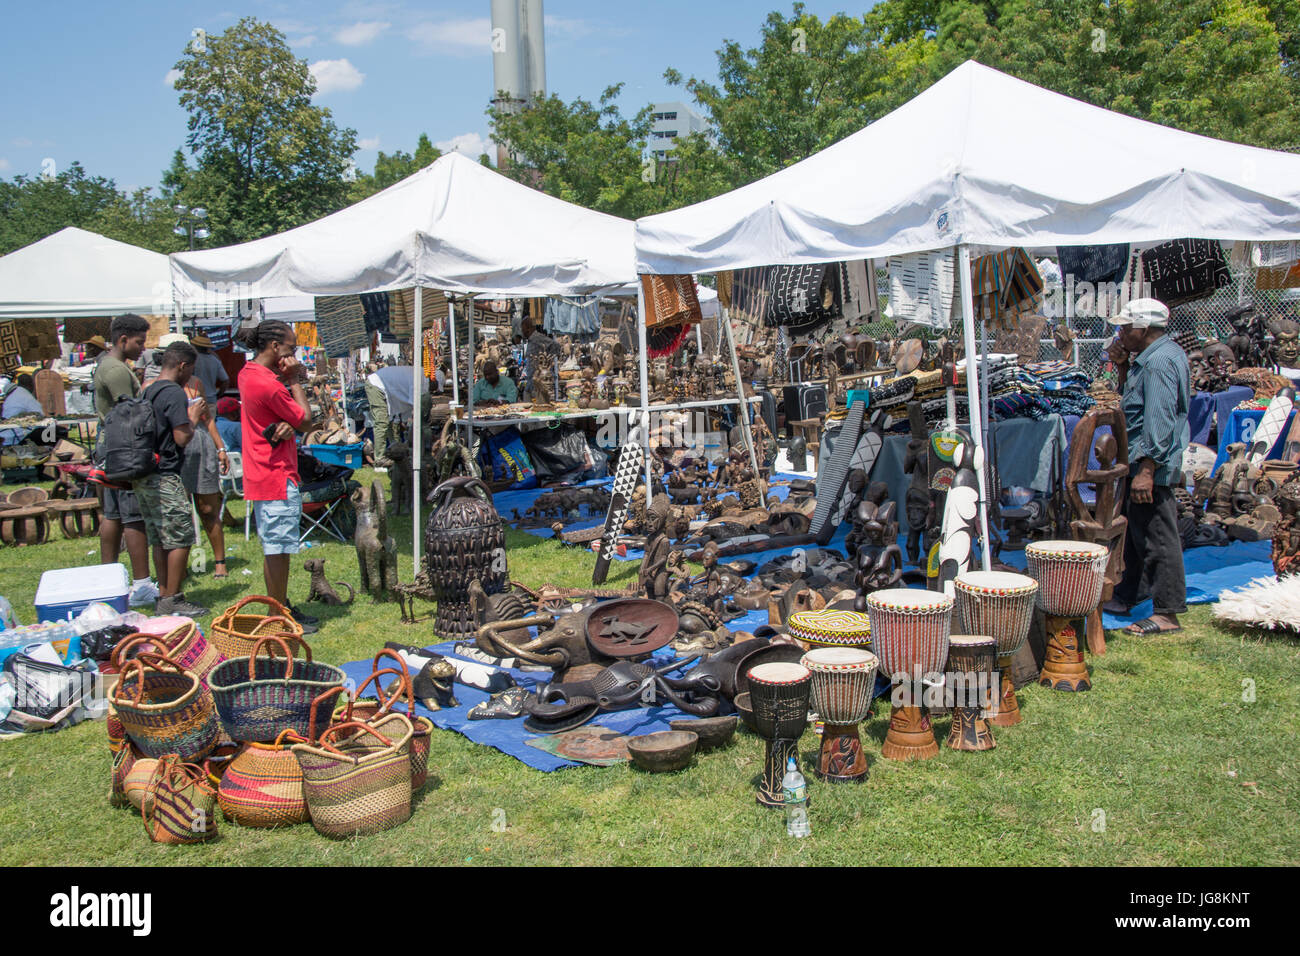 Brooklyn, USA. 4th July, 2017. A panoply of cultural products and artifacts on display under tents on the festival - Stock Image